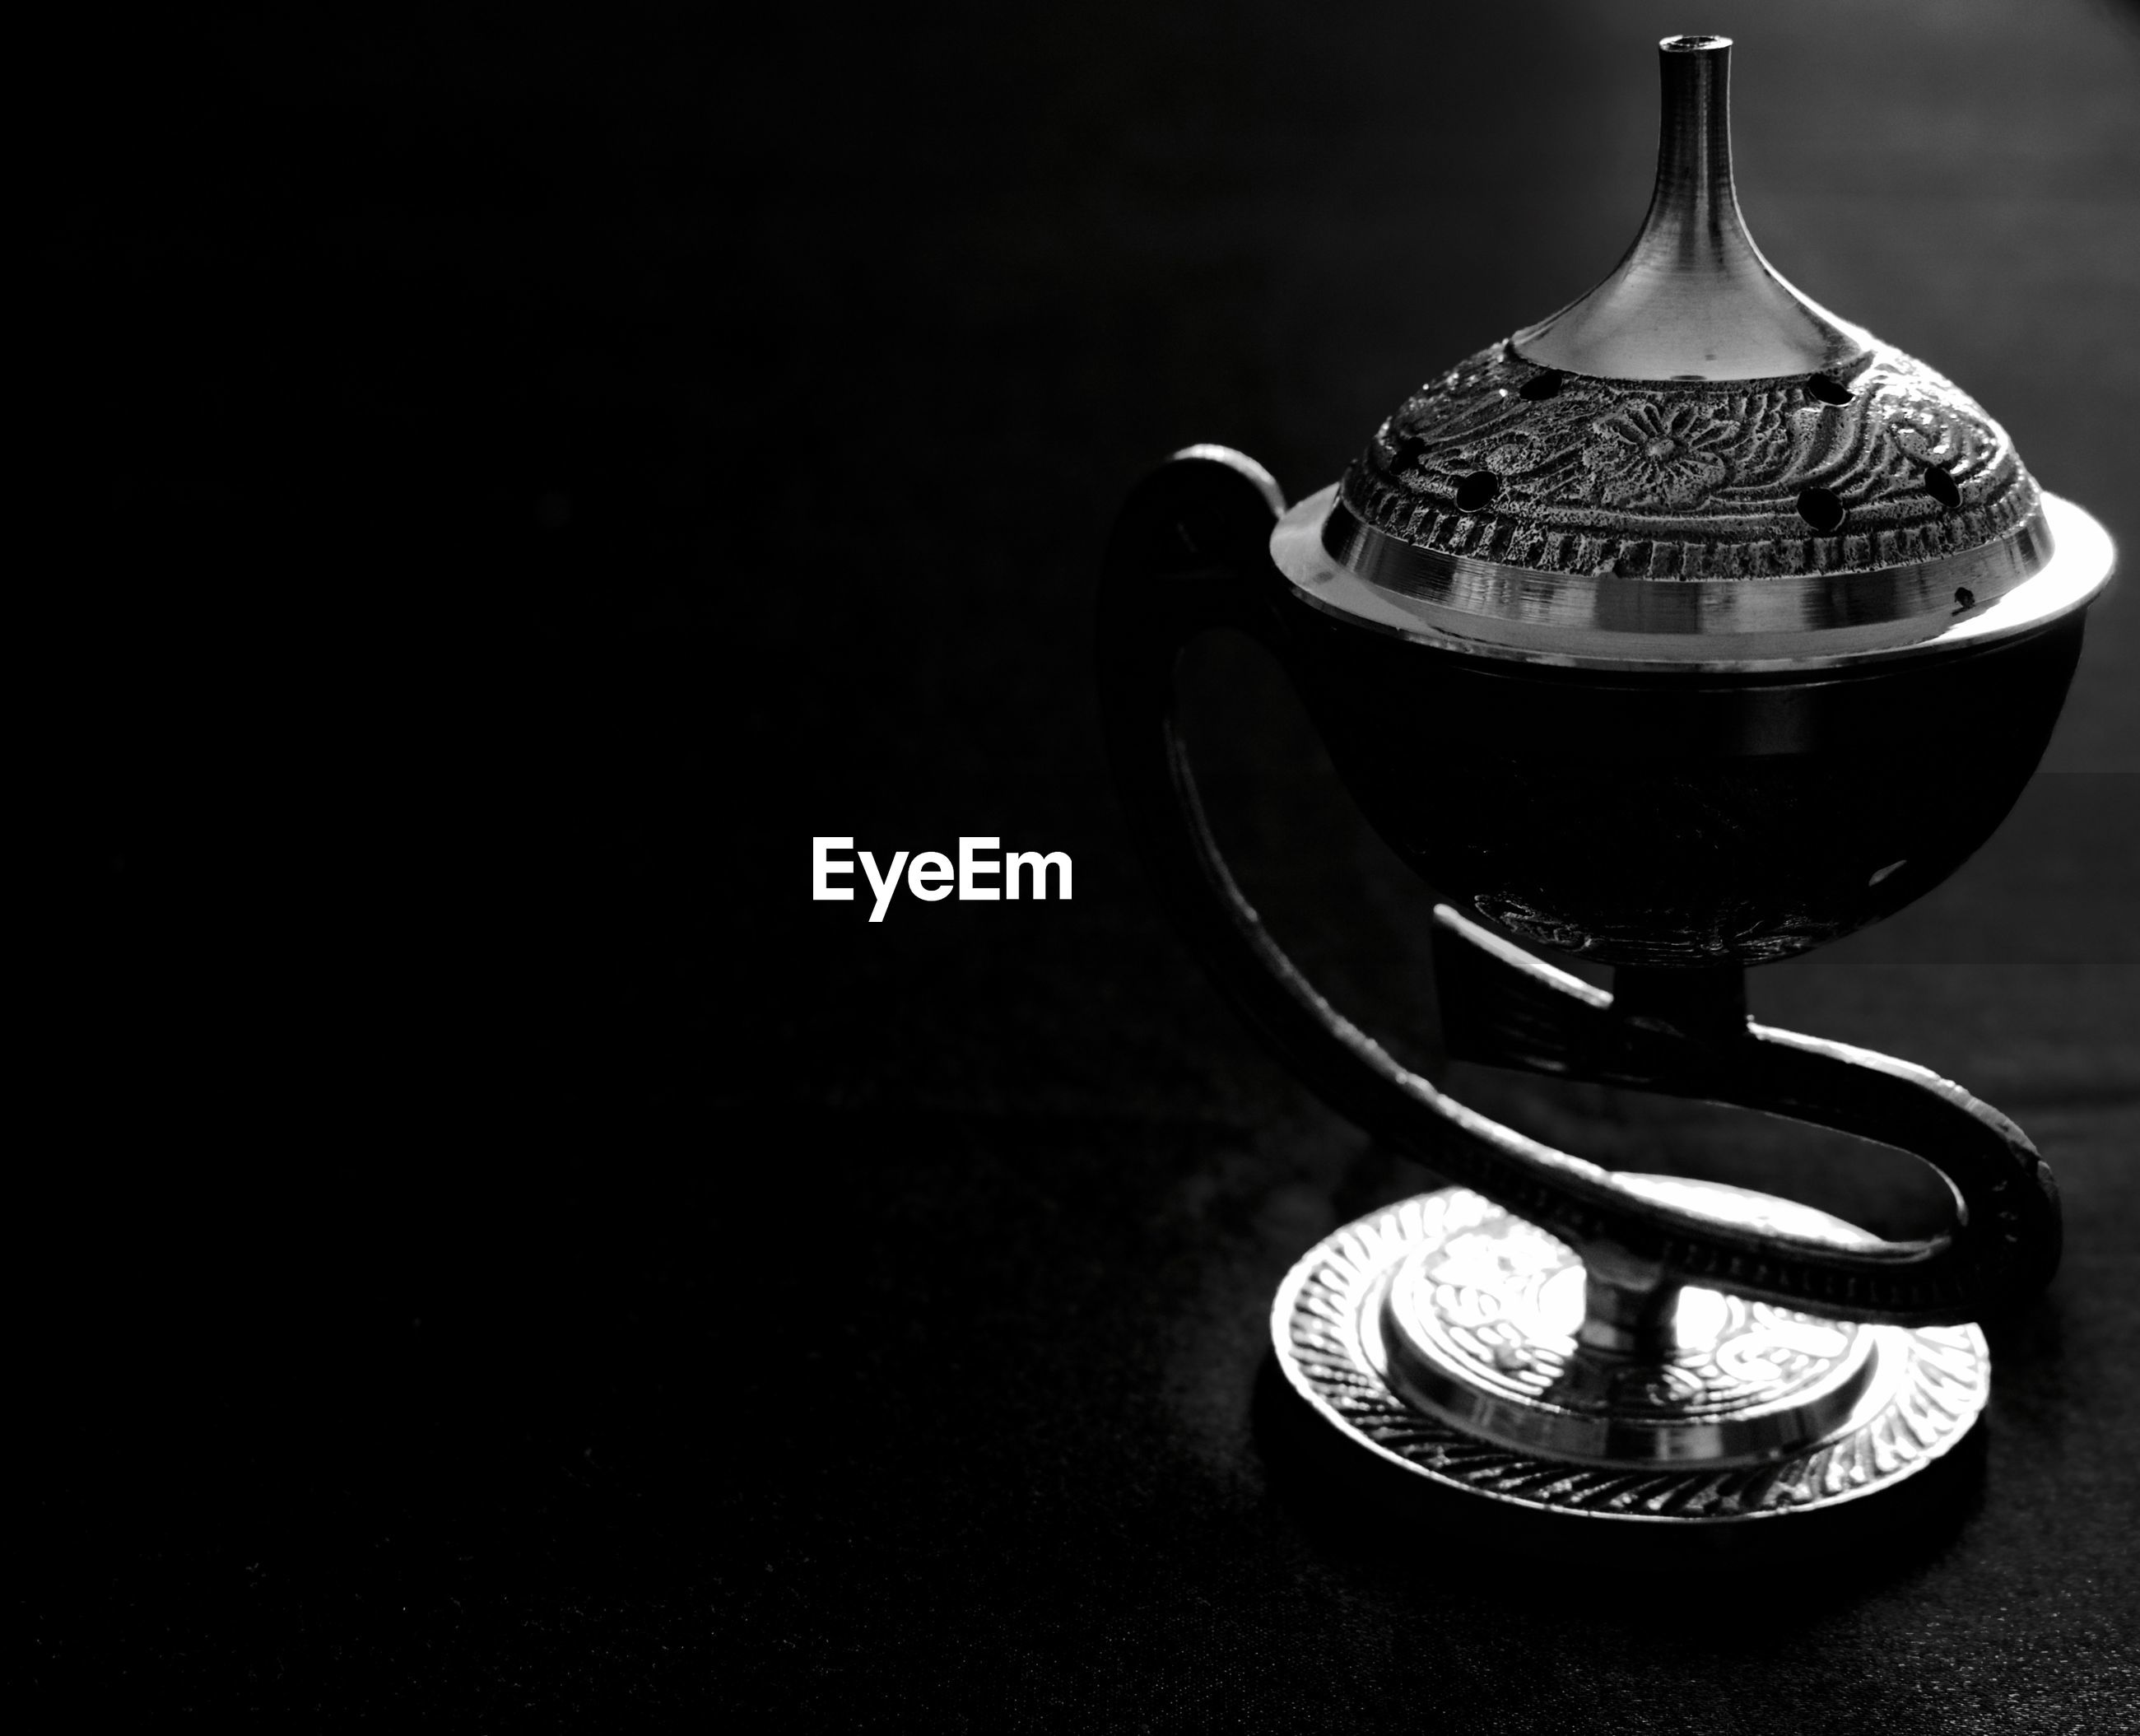 Close-up of censer on table